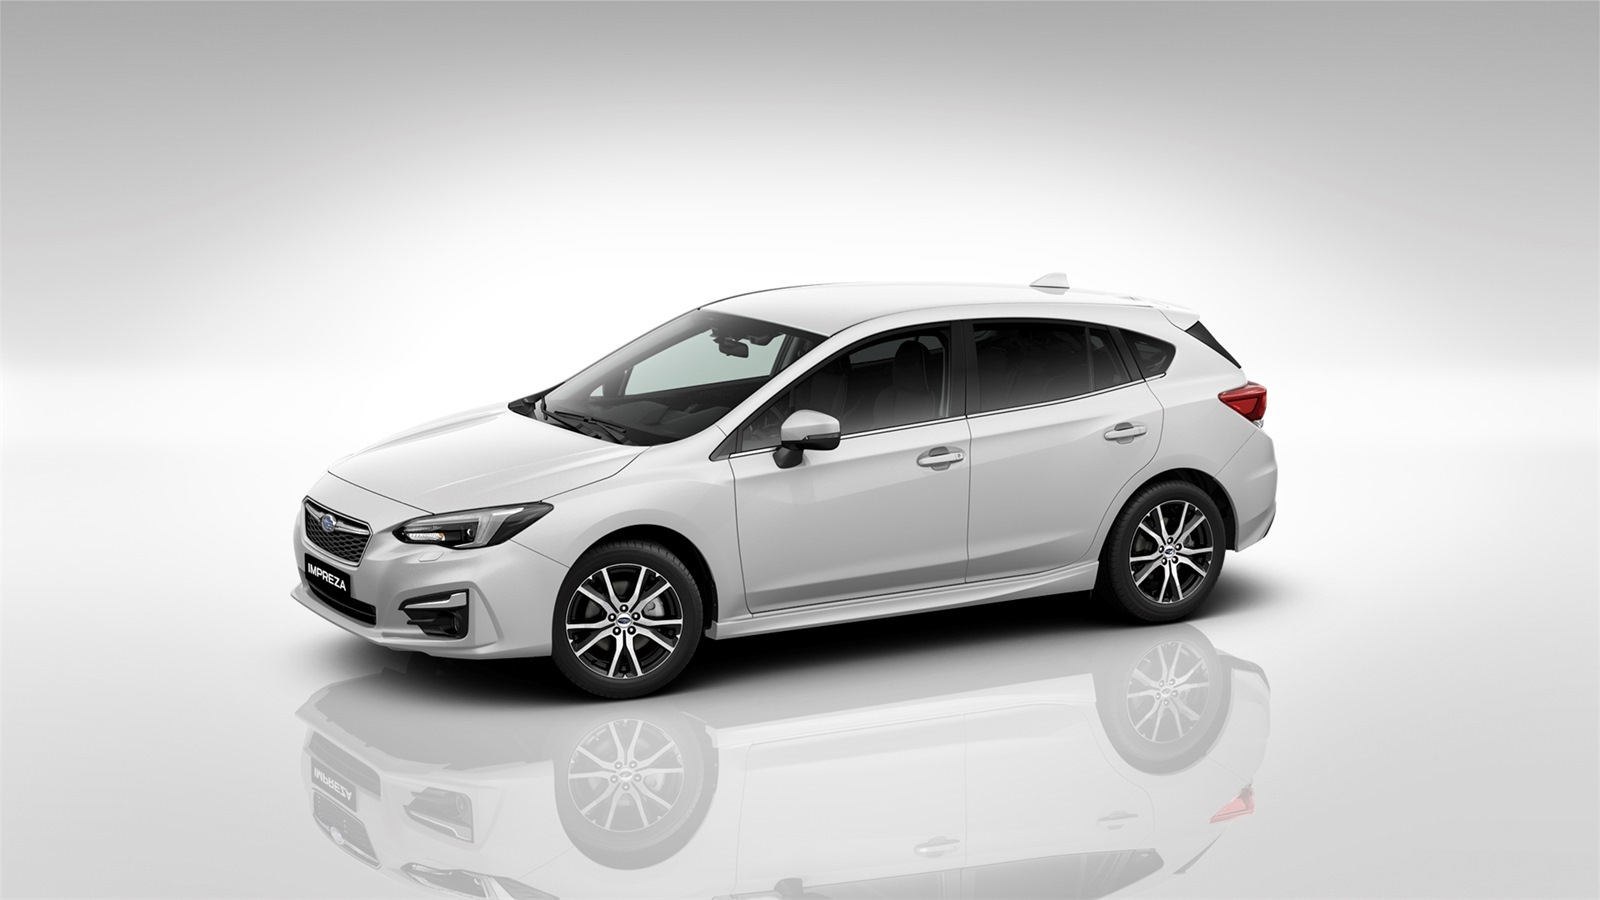 subaru impreza - Available in Crystal Pearl White